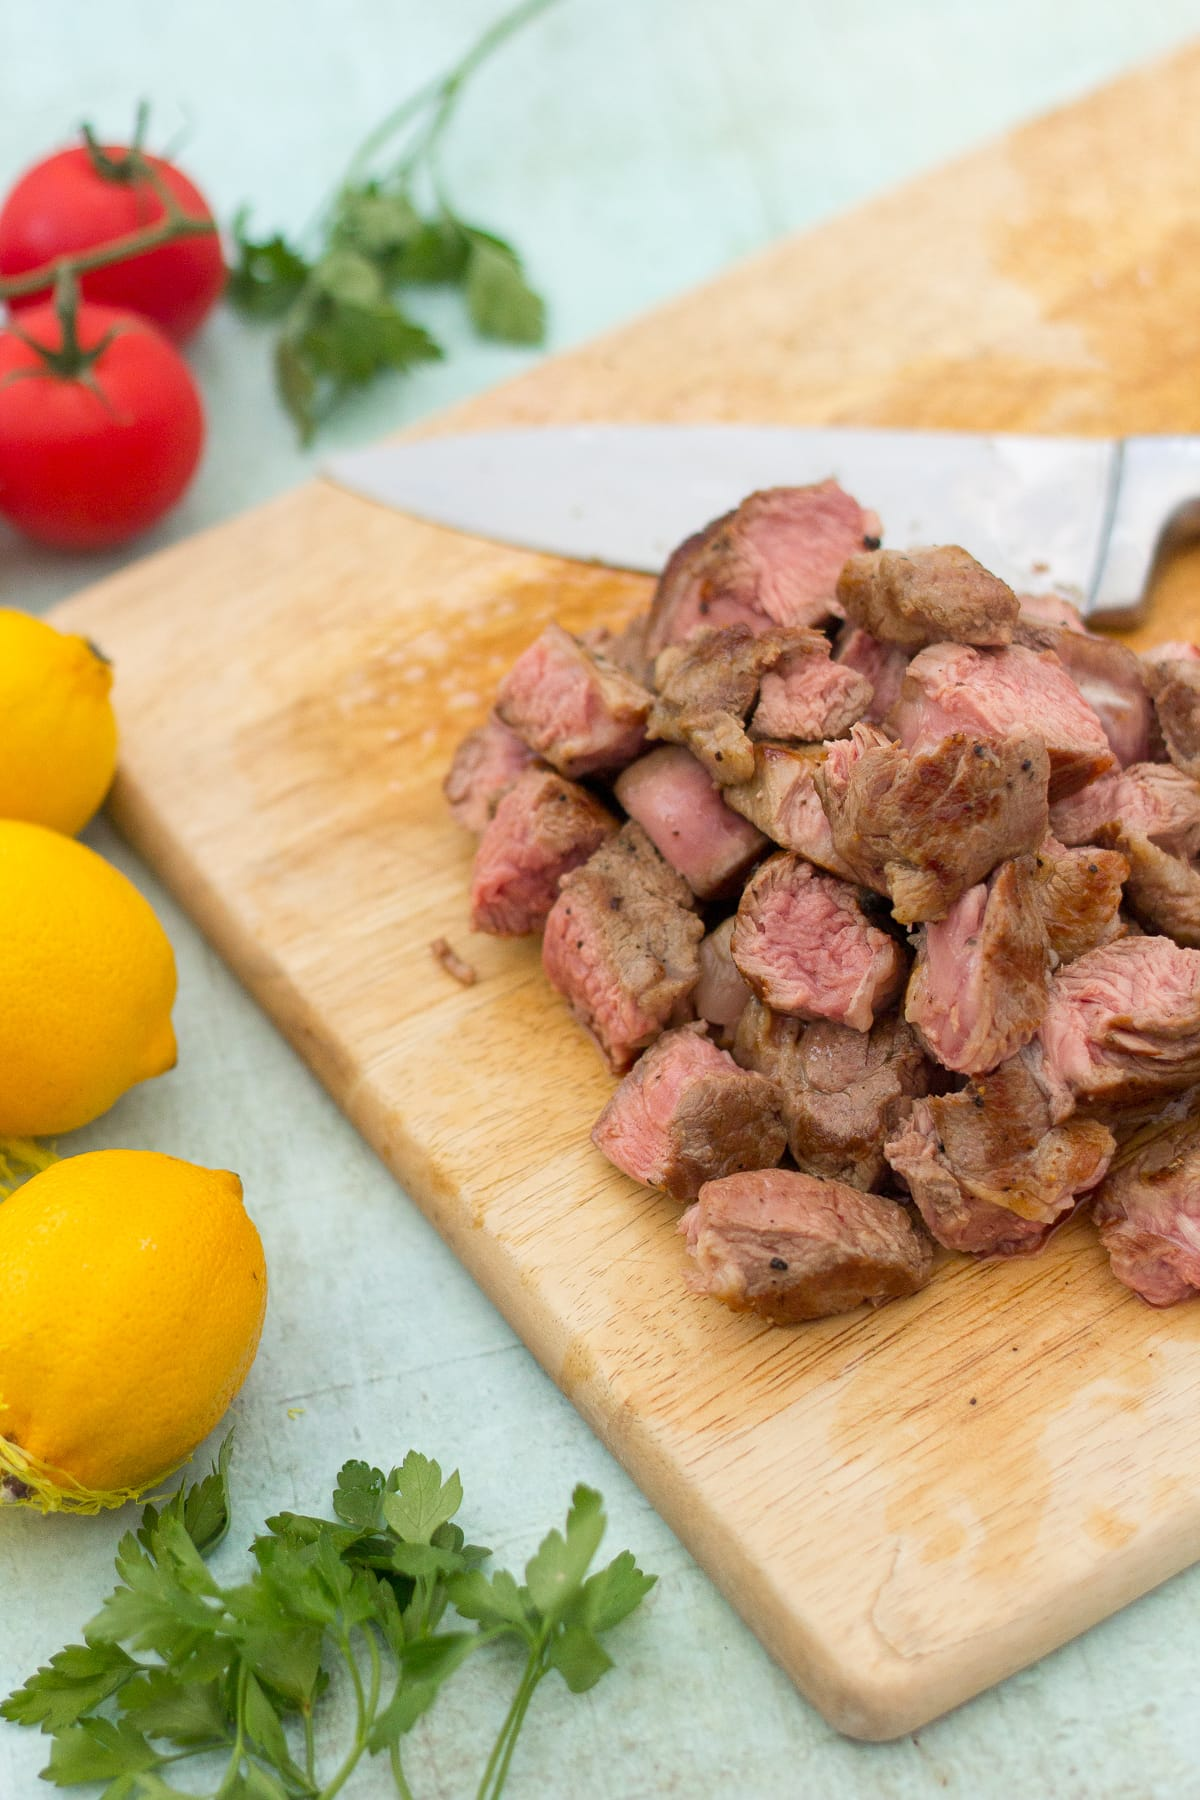 Pan fried lamb leg steaks (diced)